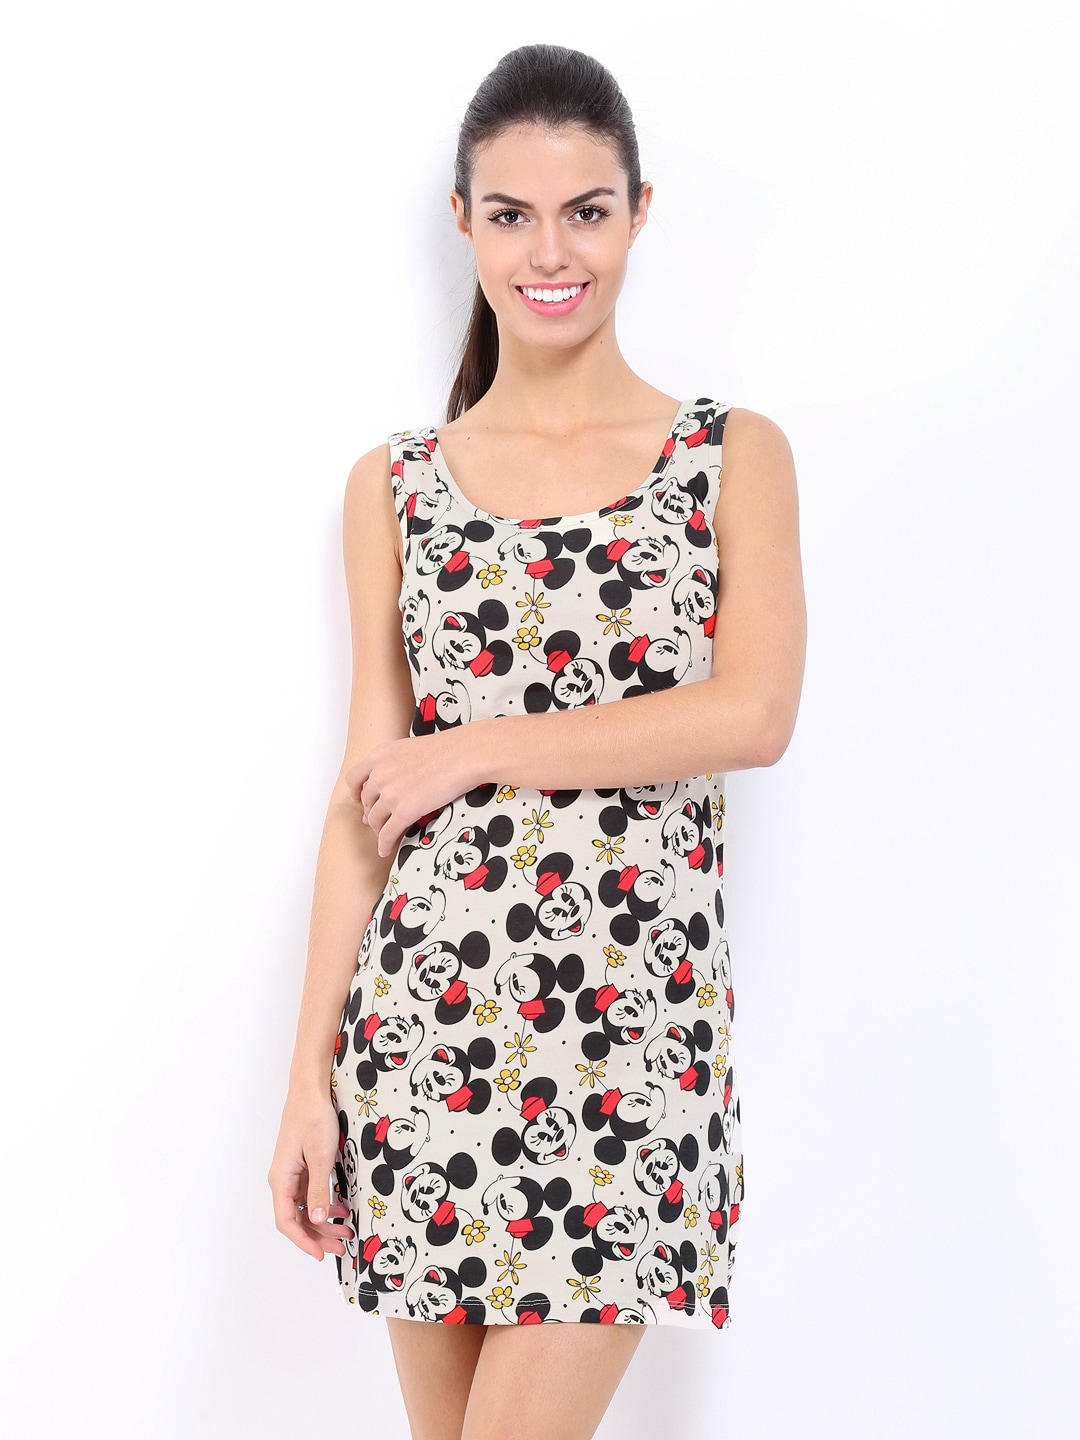 Find great deals on Disney Dresses at Kohl's today! Sponsored Links Outside companies pay to advertise via these links when specific phrases and words are searched. Clicking on these links will open a new tab displaying that respective companys own website. Disney's Minnie Mouse Girls Print Skater Dress by Jumping Beans®.